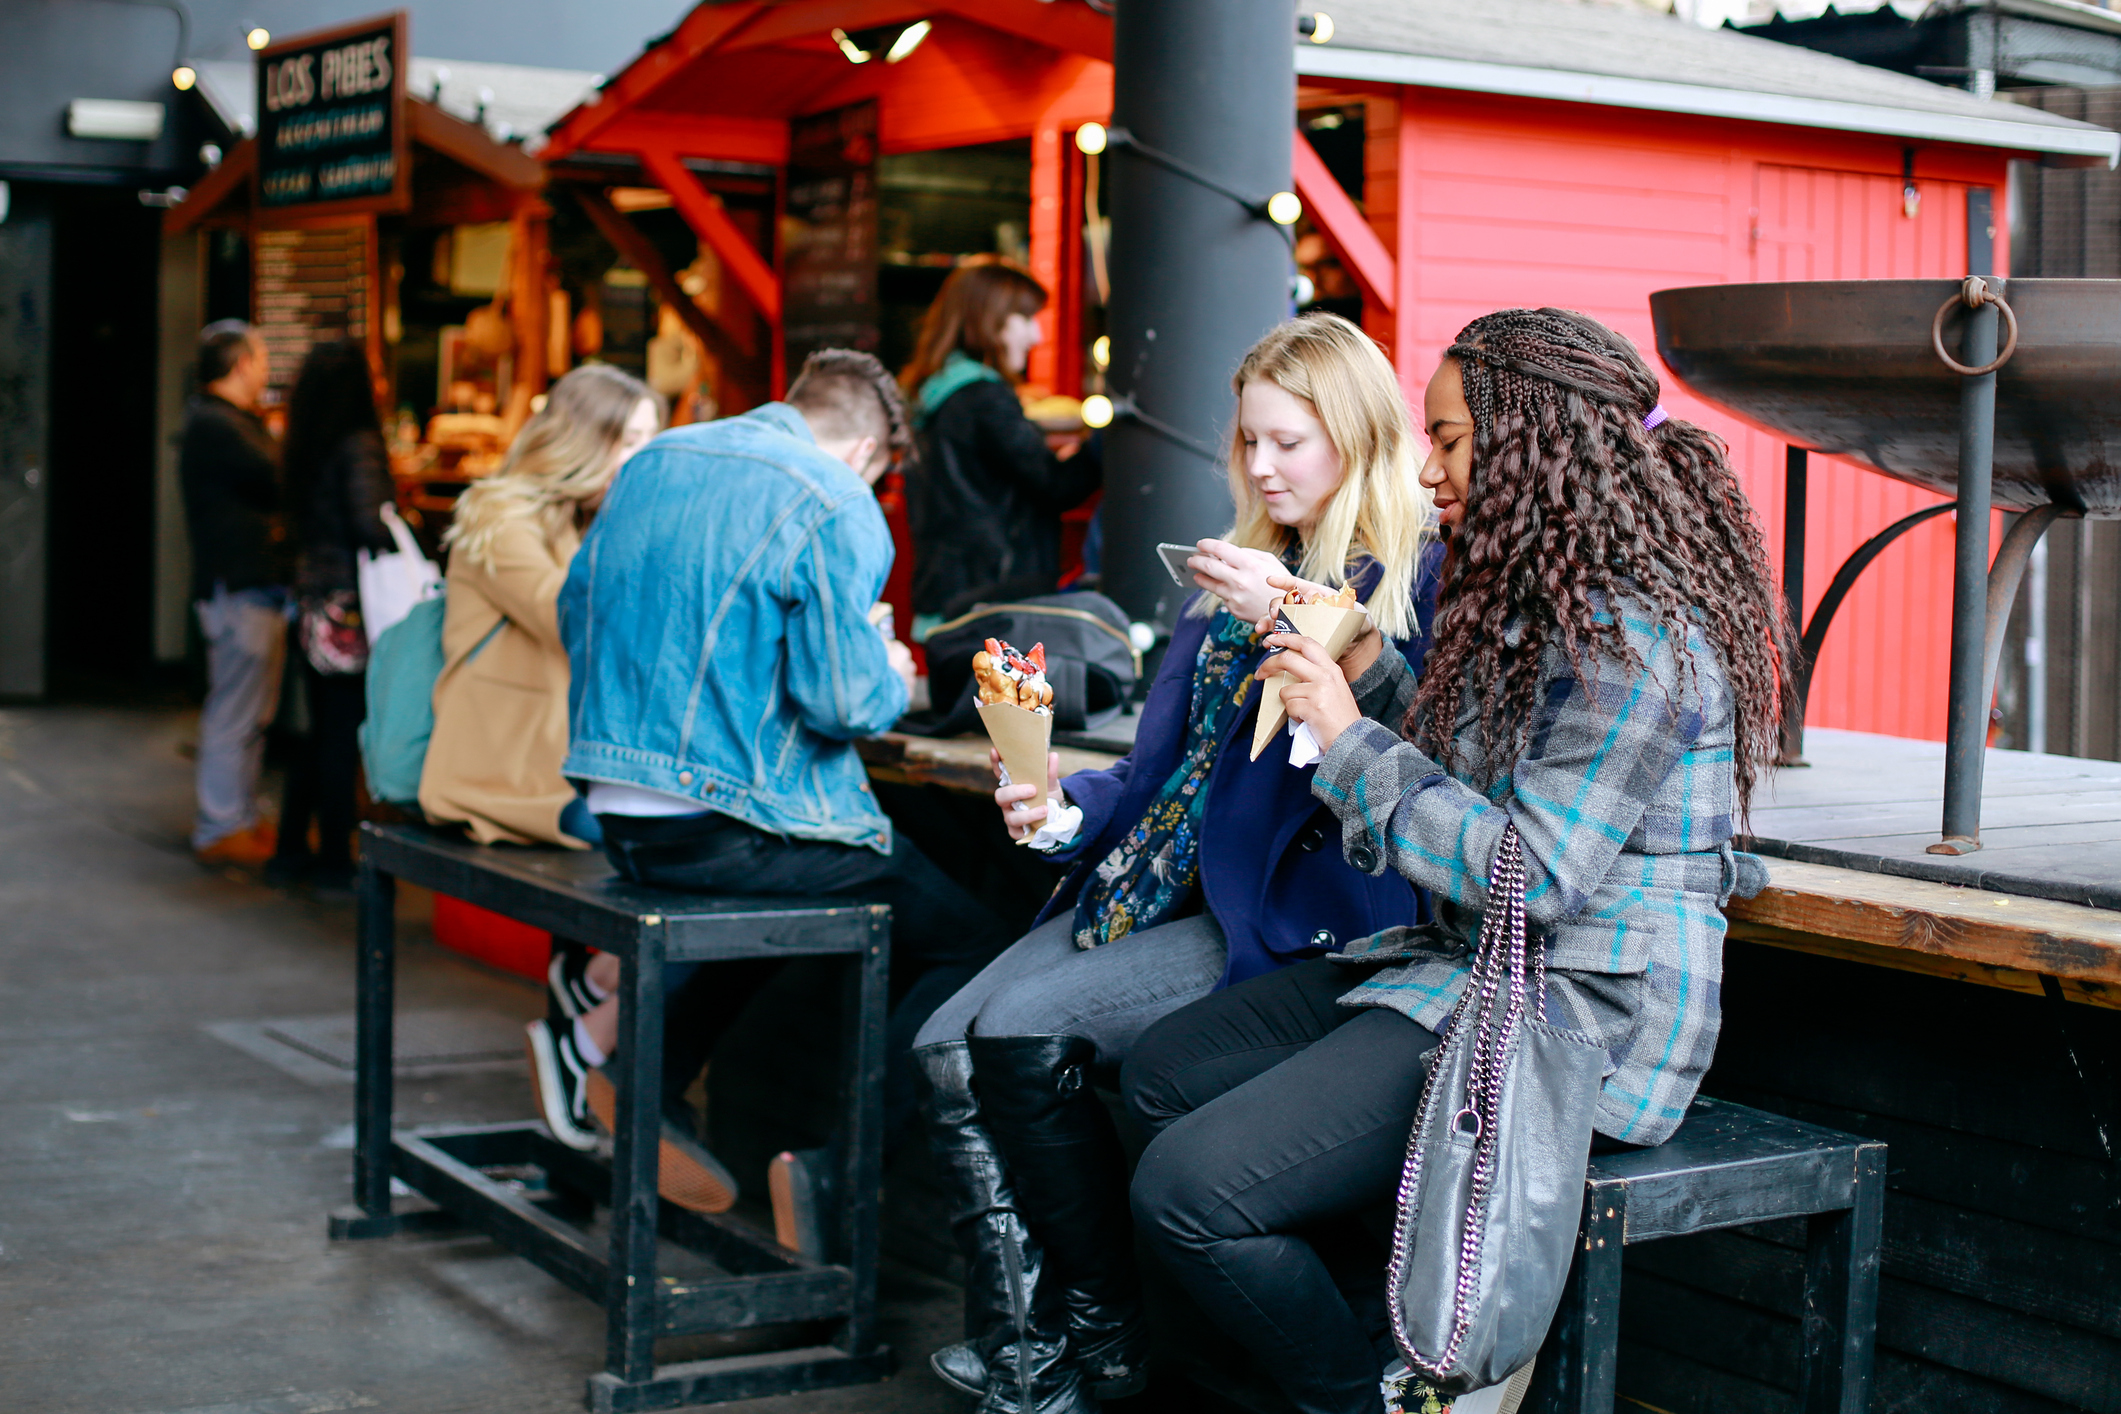 London to get 19 new street food courts